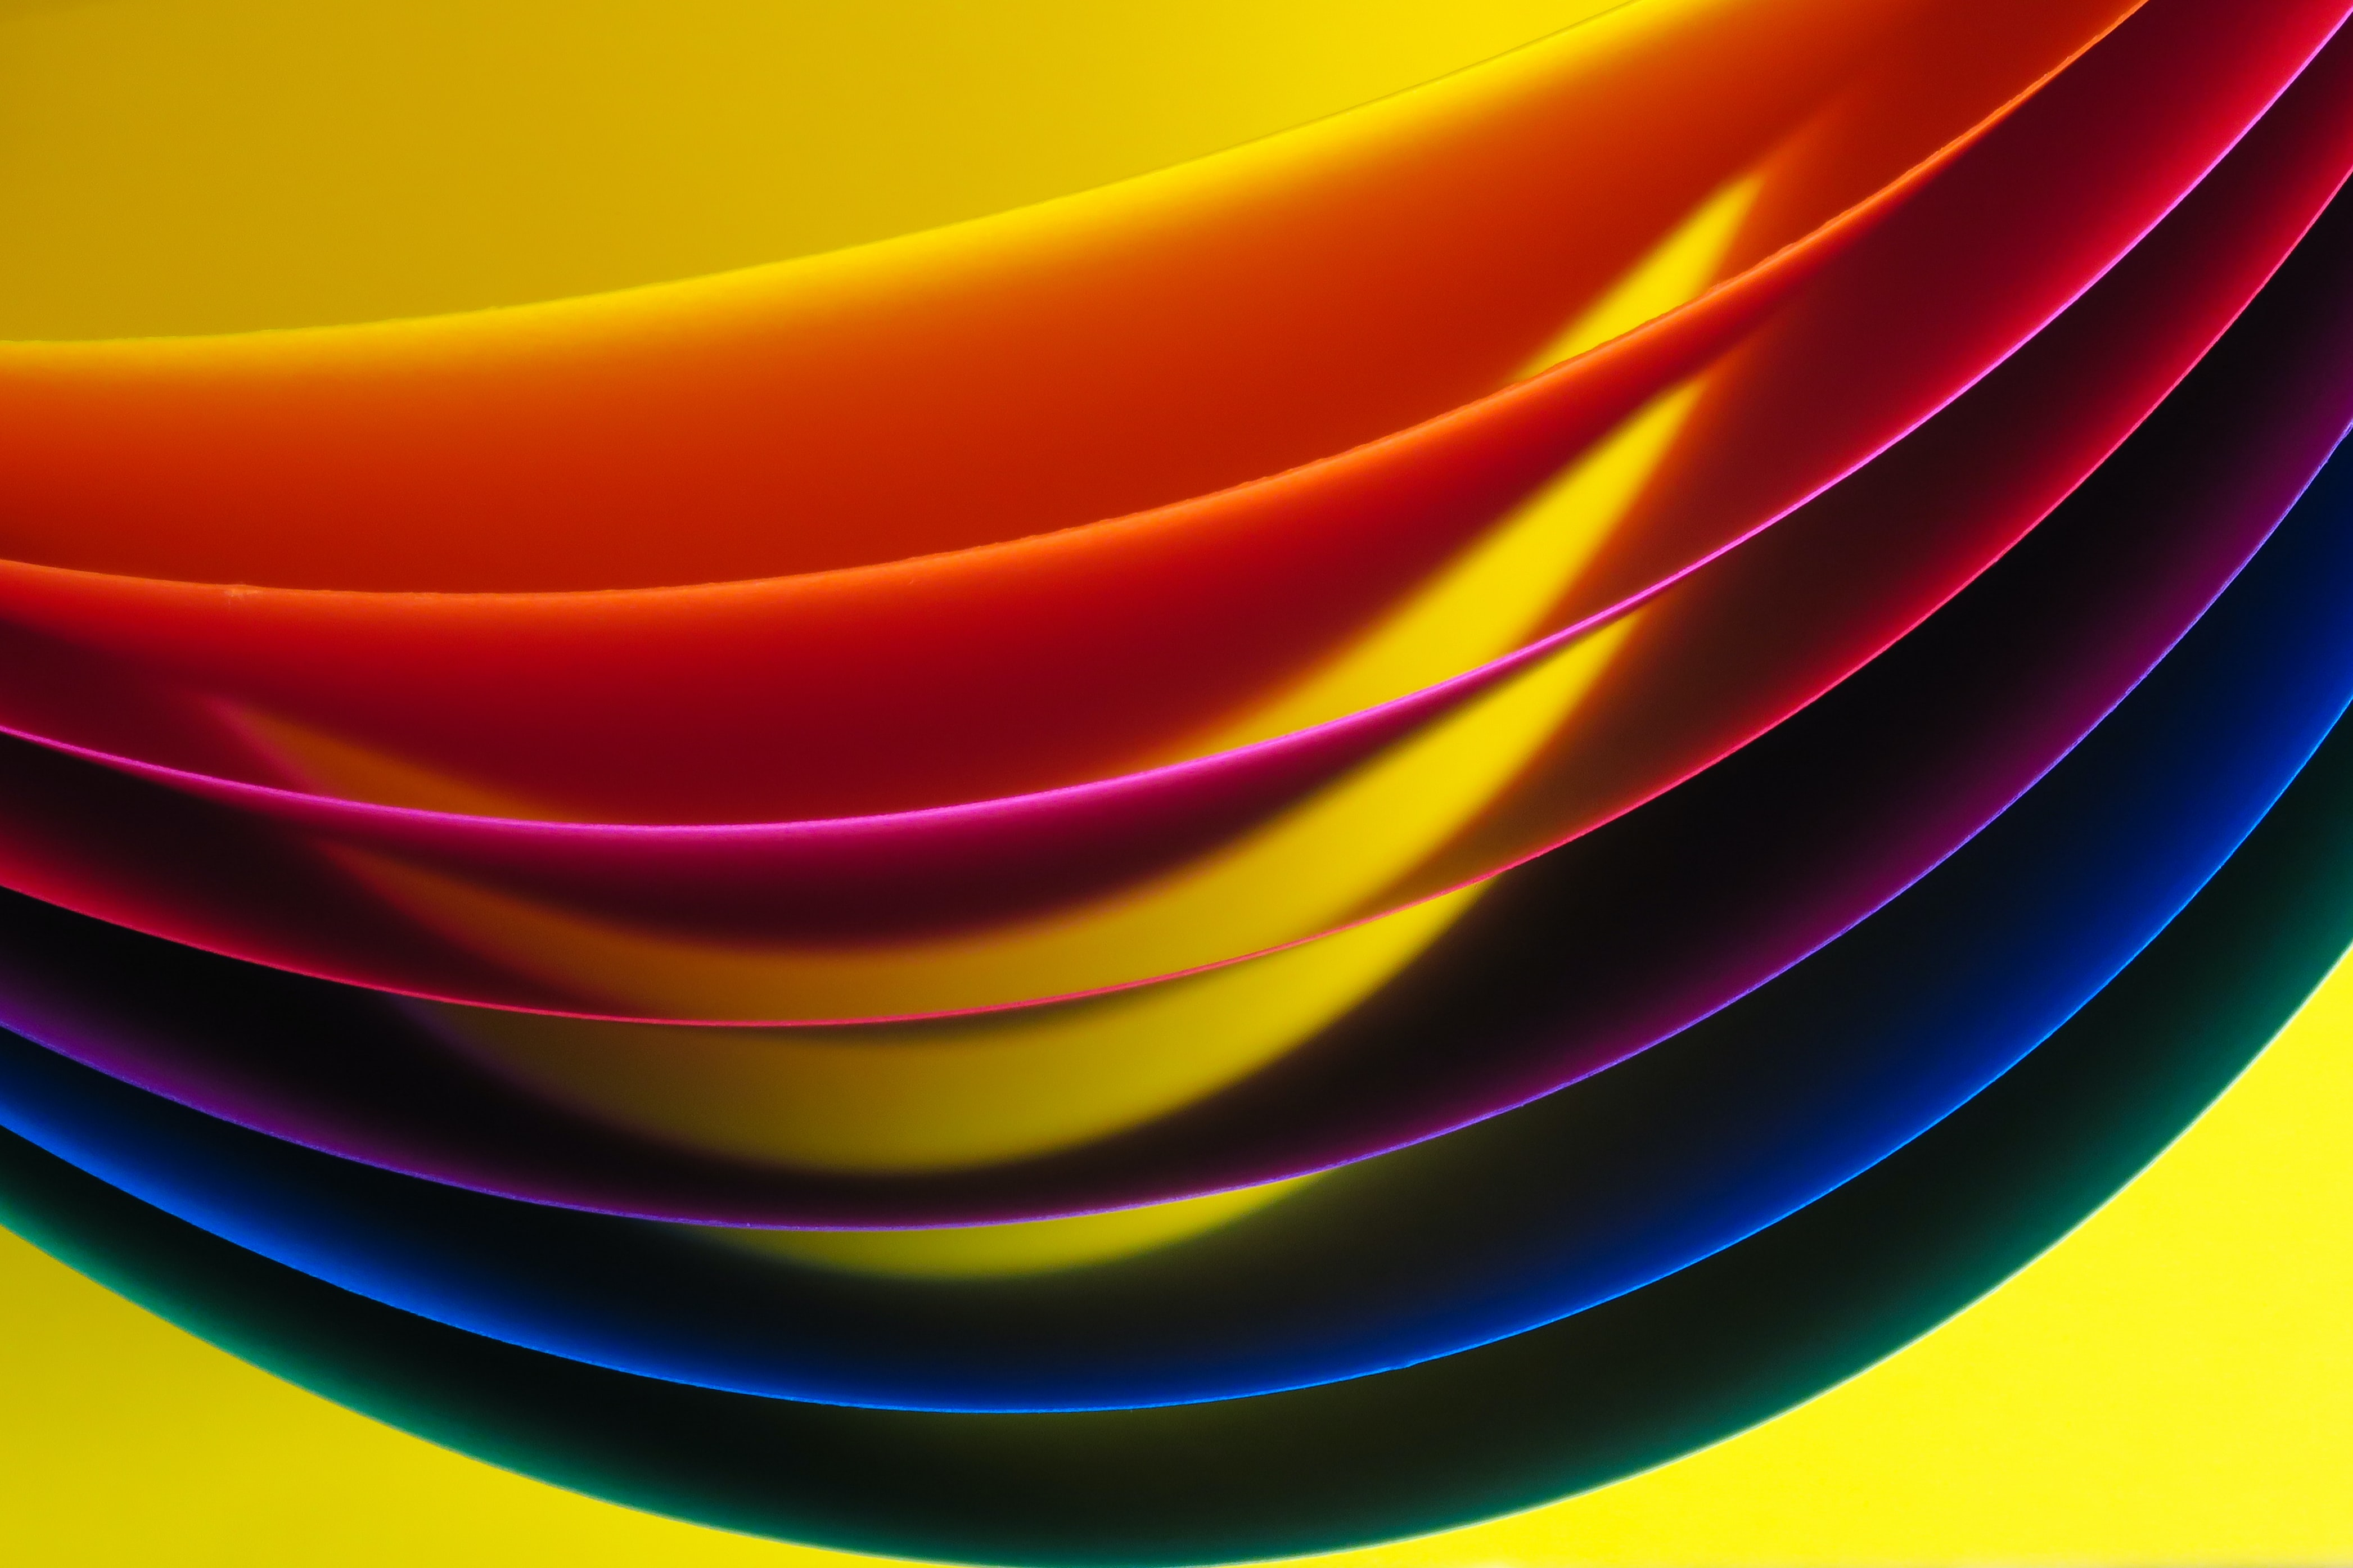 yellow, red, purple, blue, and green layer paper wallpaper